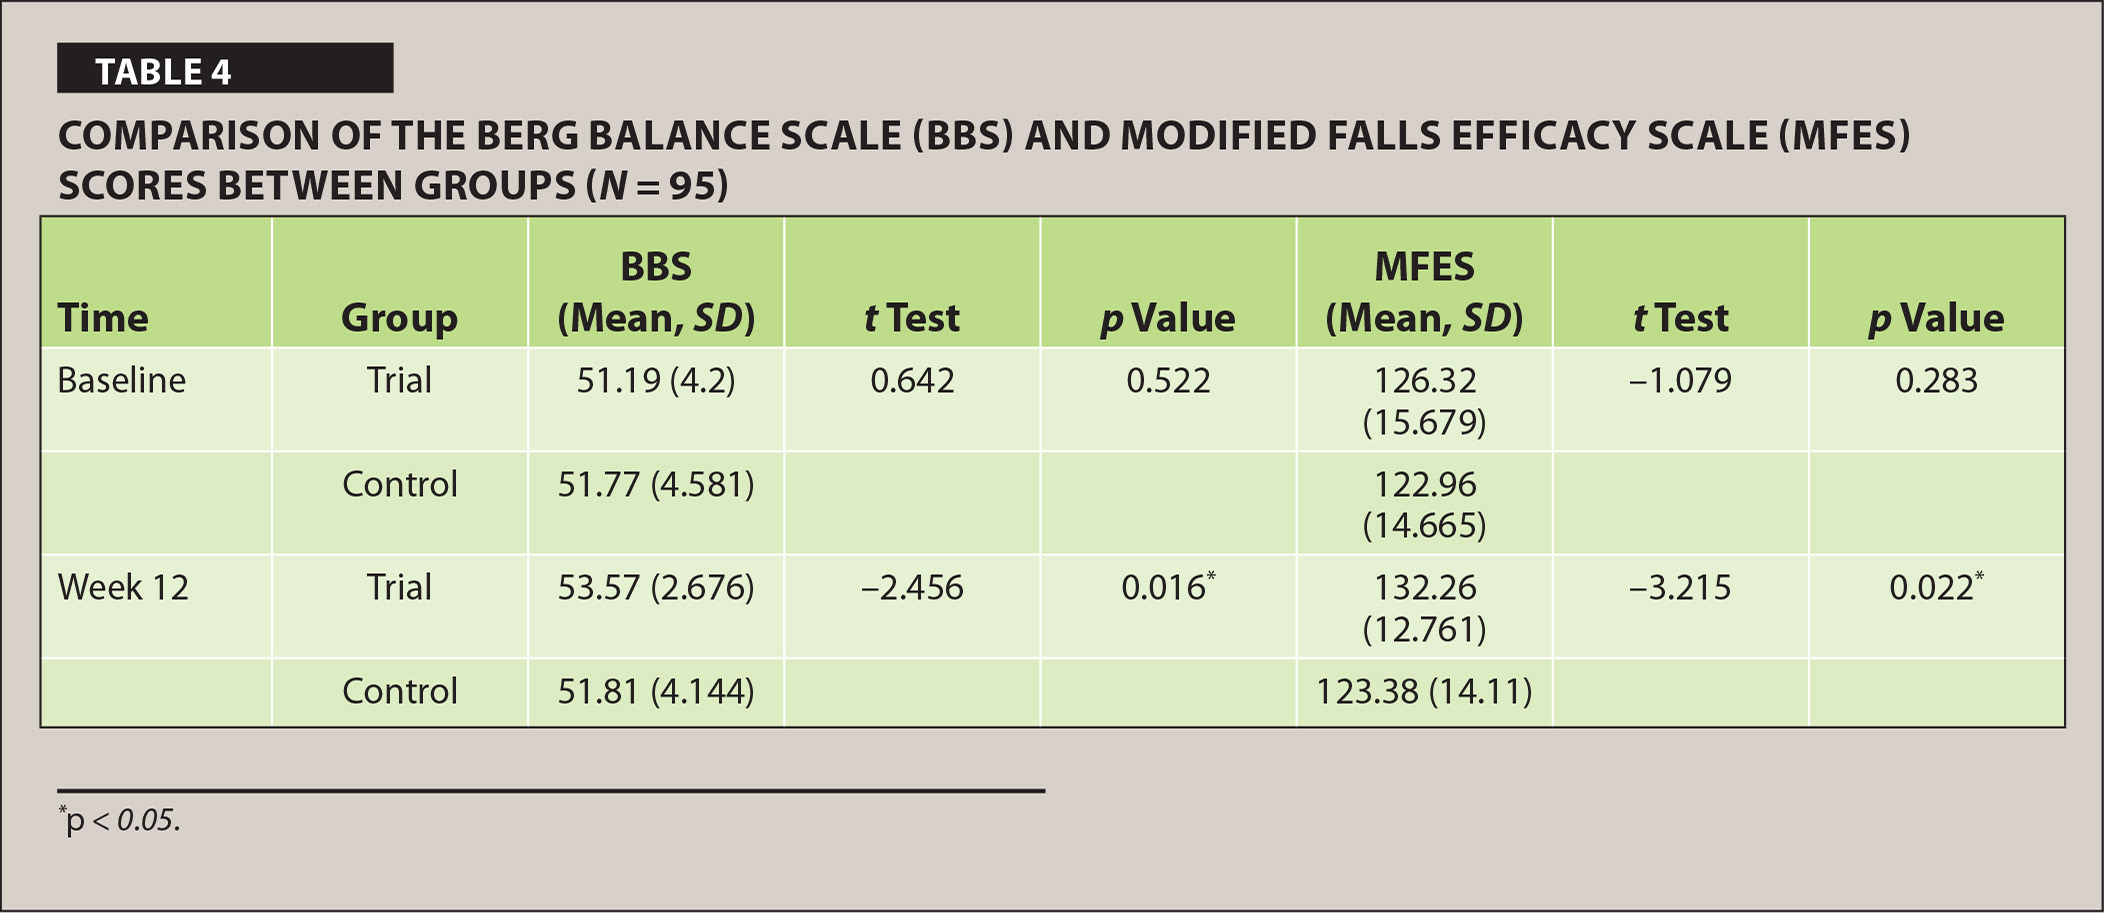 Comparison of the Berg Balance Scale (BBS) and Modified Falls Efficacy Scale (MFES) Scores Between Groups (N = 95)